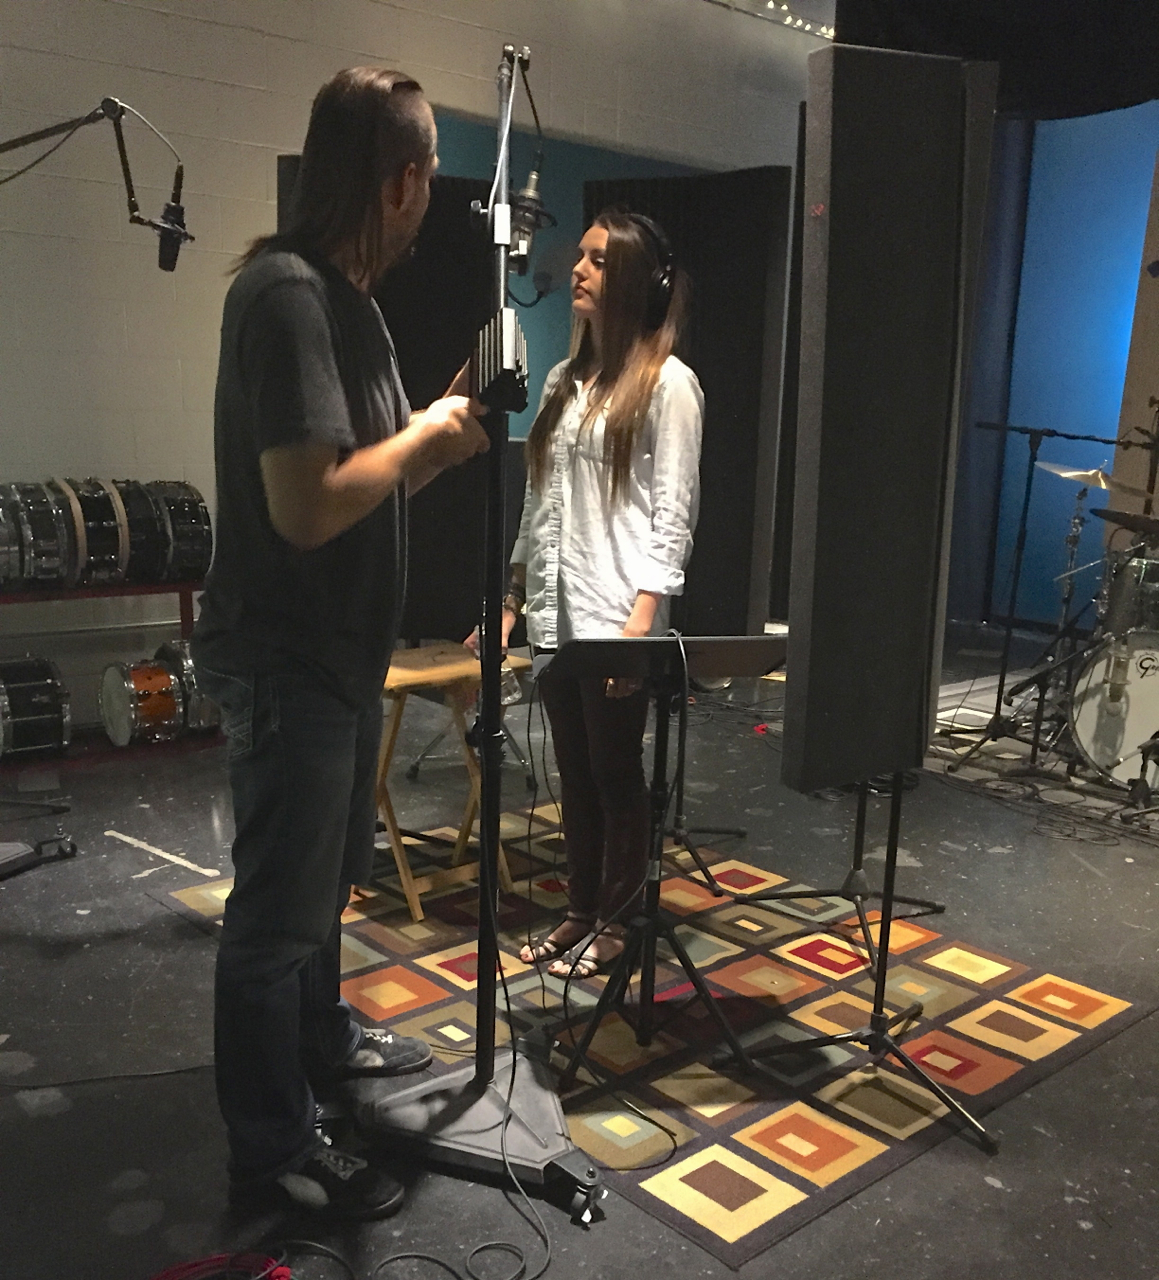 Producer/Engineer Charlie Waymire places microphone for Kalynne Michelle